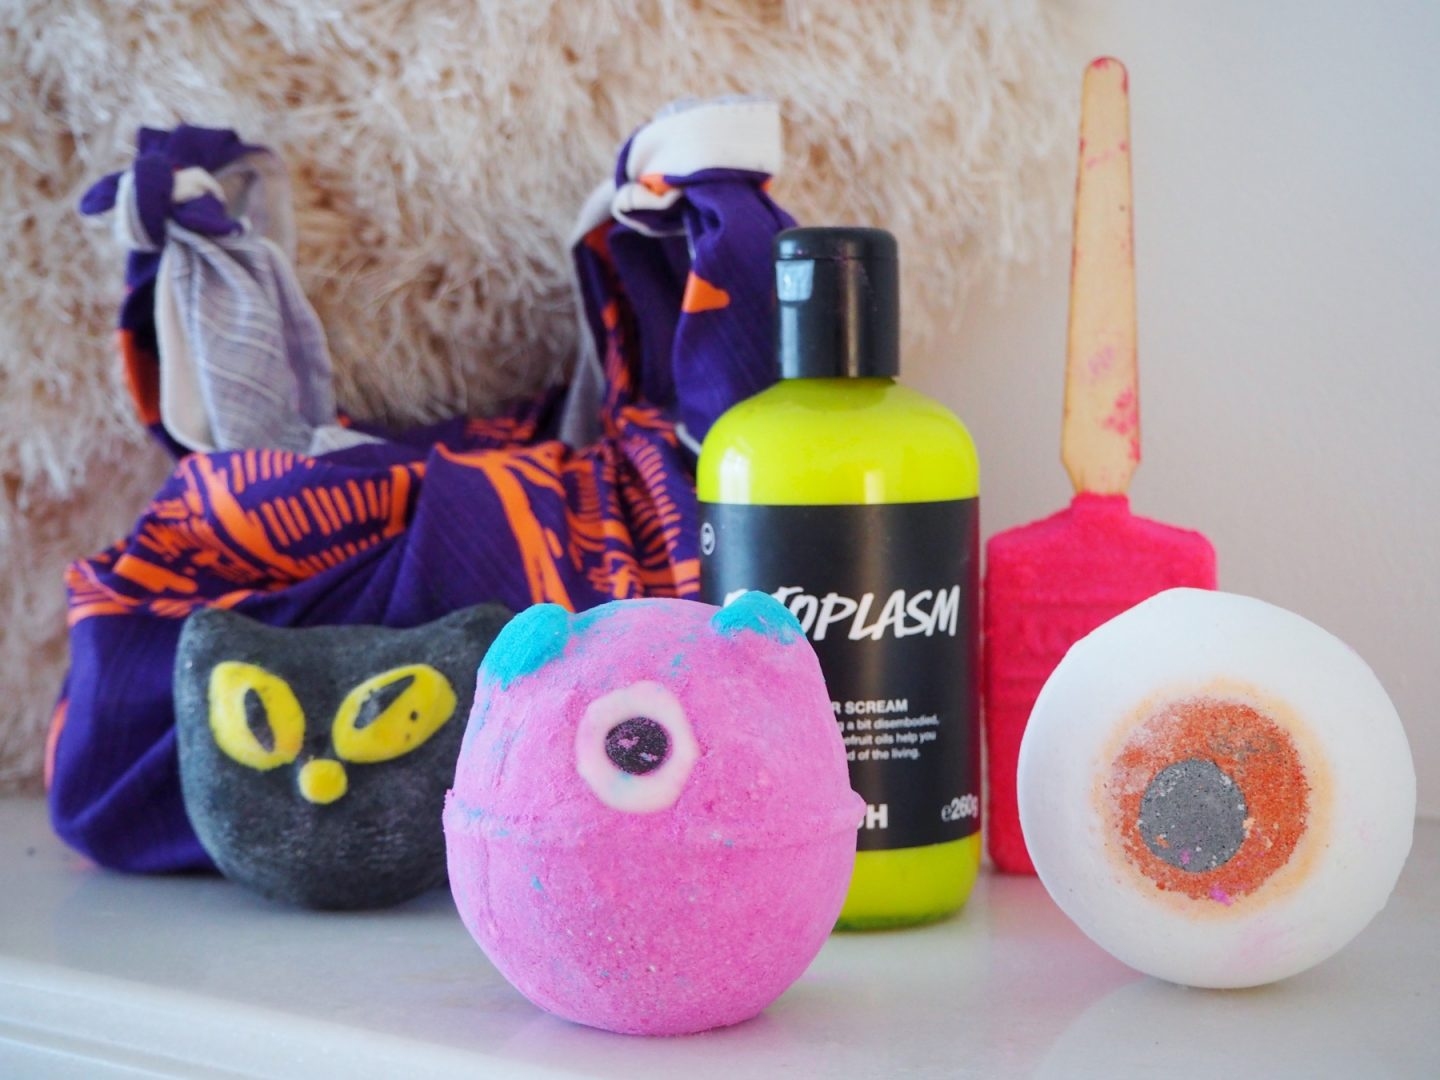 A Halloween Lush Haul - all products